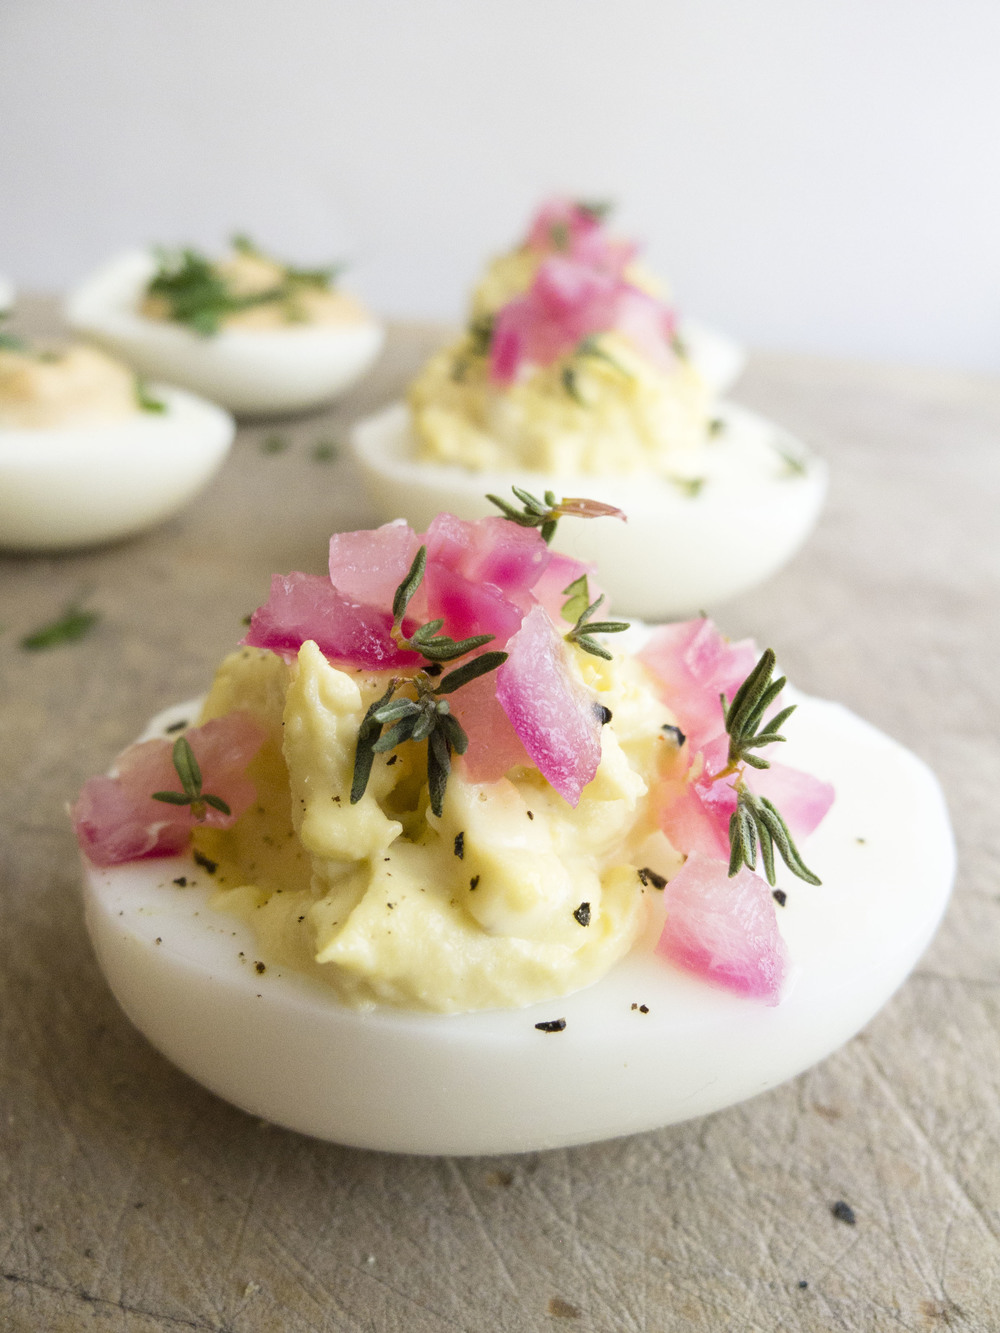 Deviled eggs 3 ways: with pickled red onions and thyme